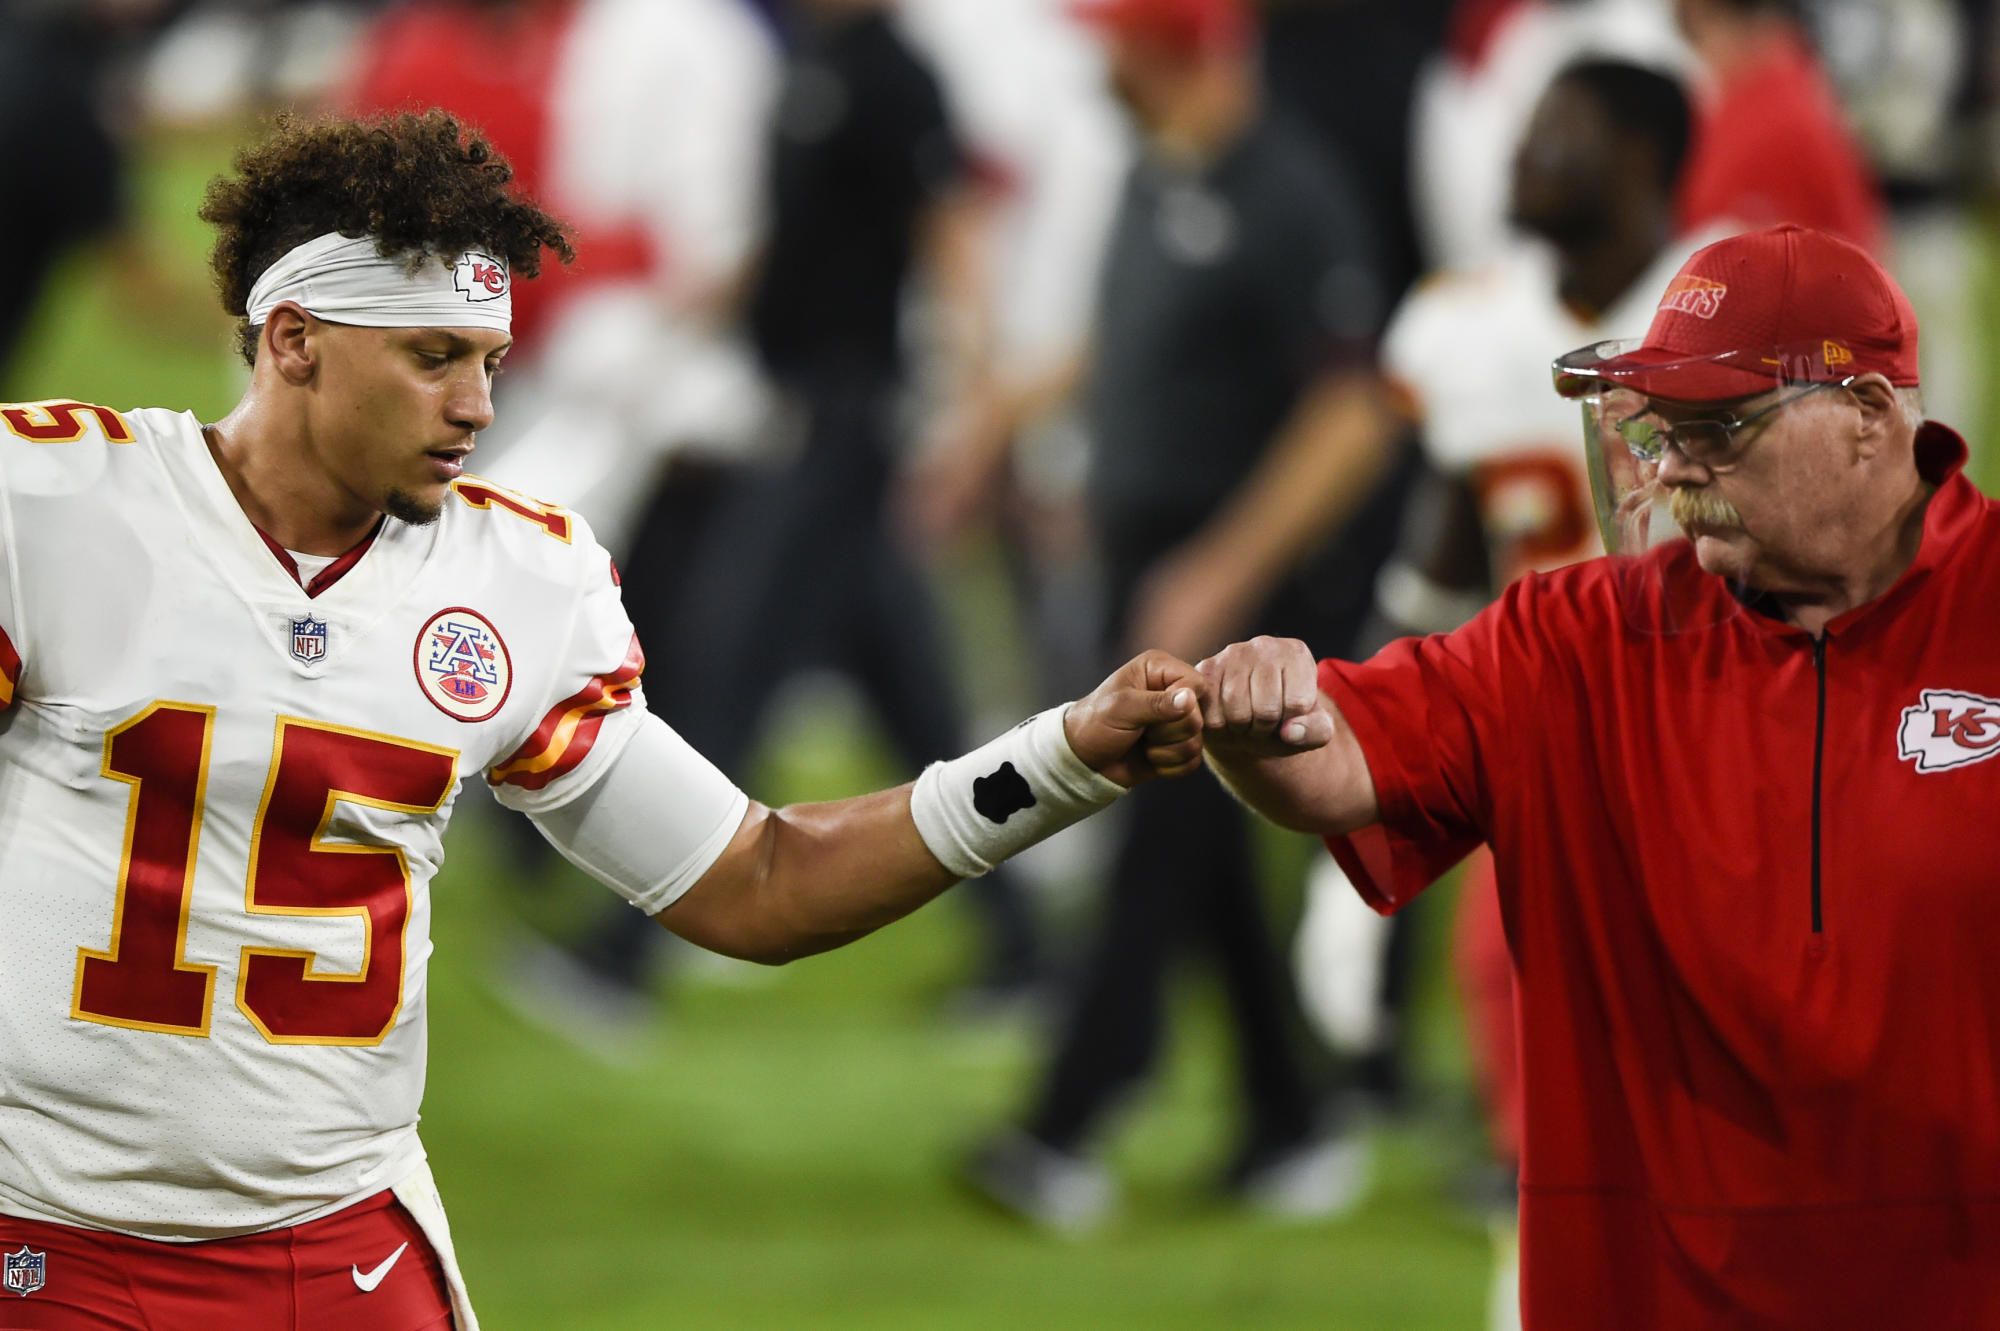 MVP race over? With top seed clinched, Chiefs coach Andy Reid says starters will rest Week 17